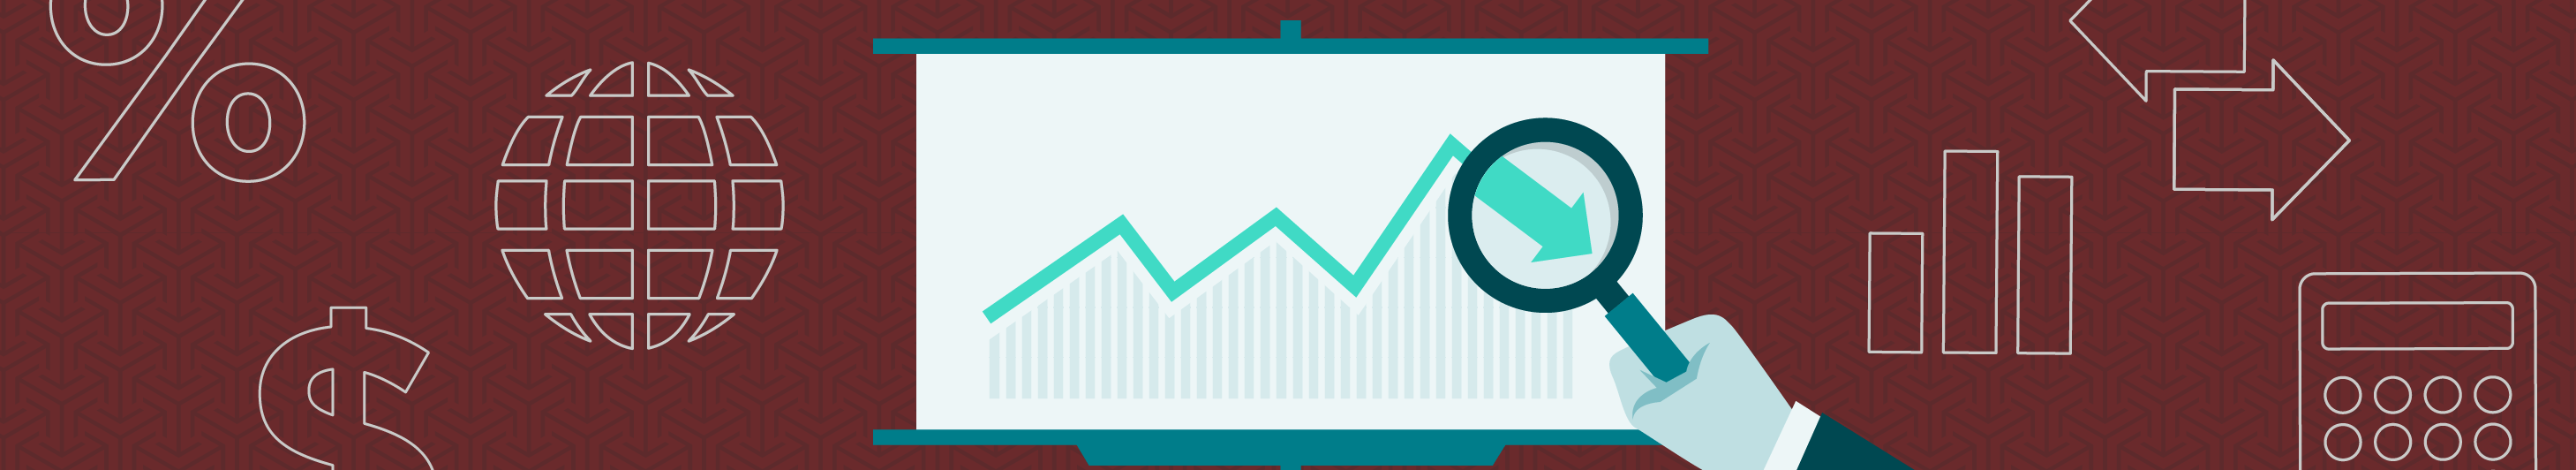 illustration of white projector screen with a turquoise arrow on a maroon background